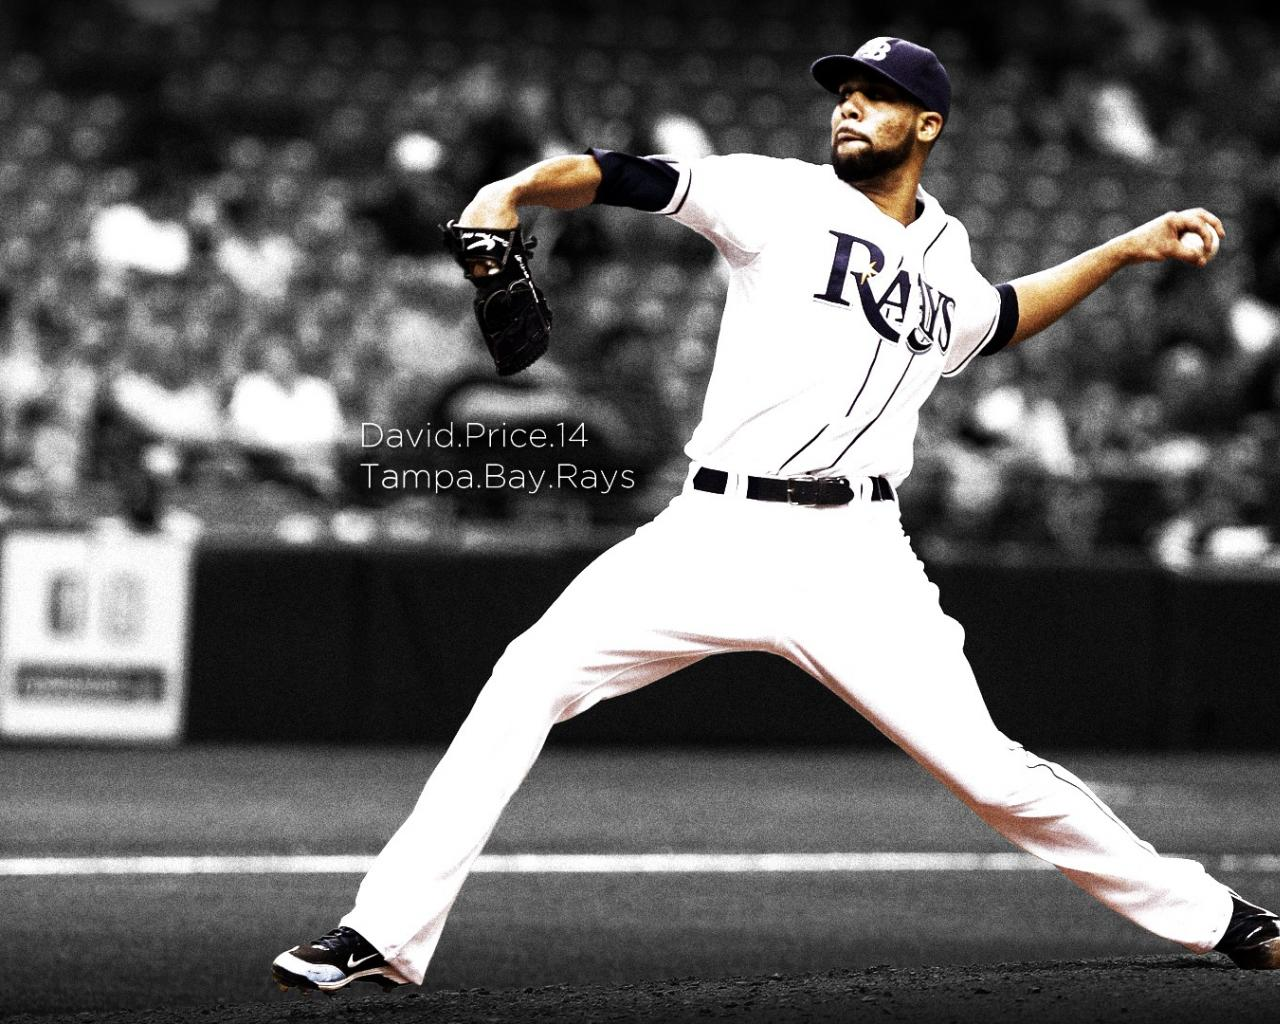 Simple tampa bay rays simplicity david price wallpaper 22855 1280x1024